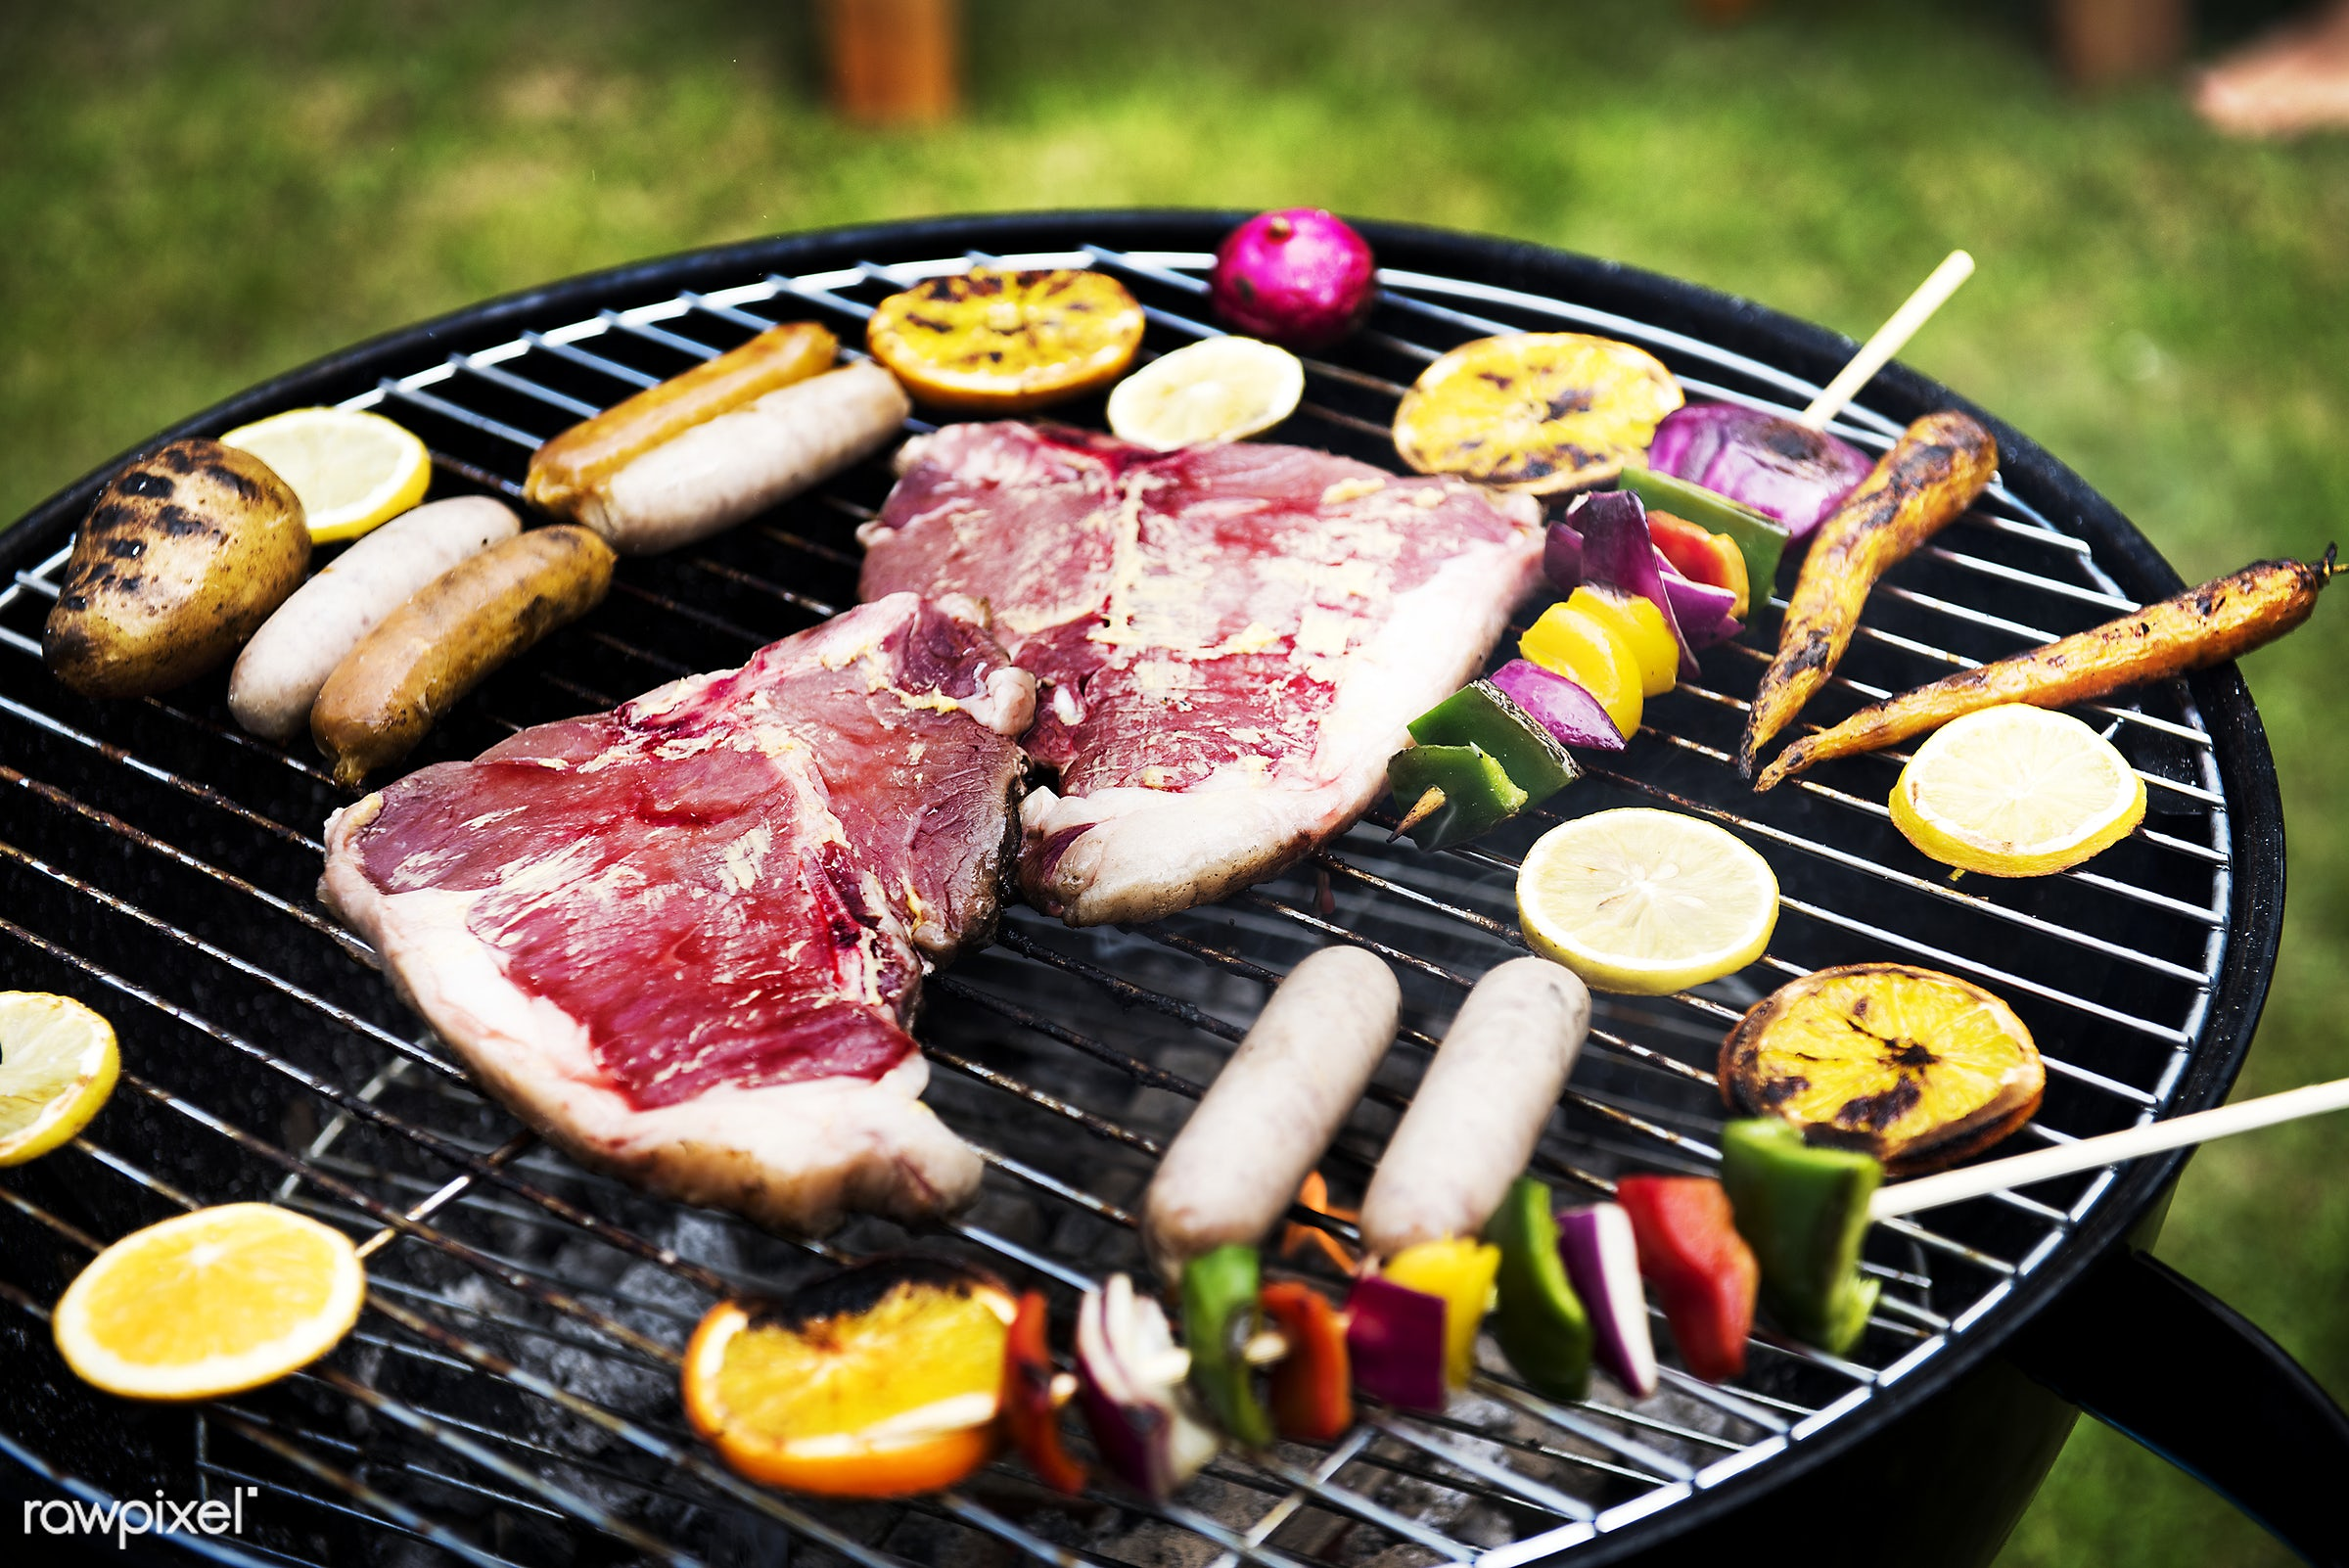 bbq, sausage, barbecue, closeup, cooking, diverse, food, fresh, grass, grill, group, holiday, homemade, leisure, meal, meats...